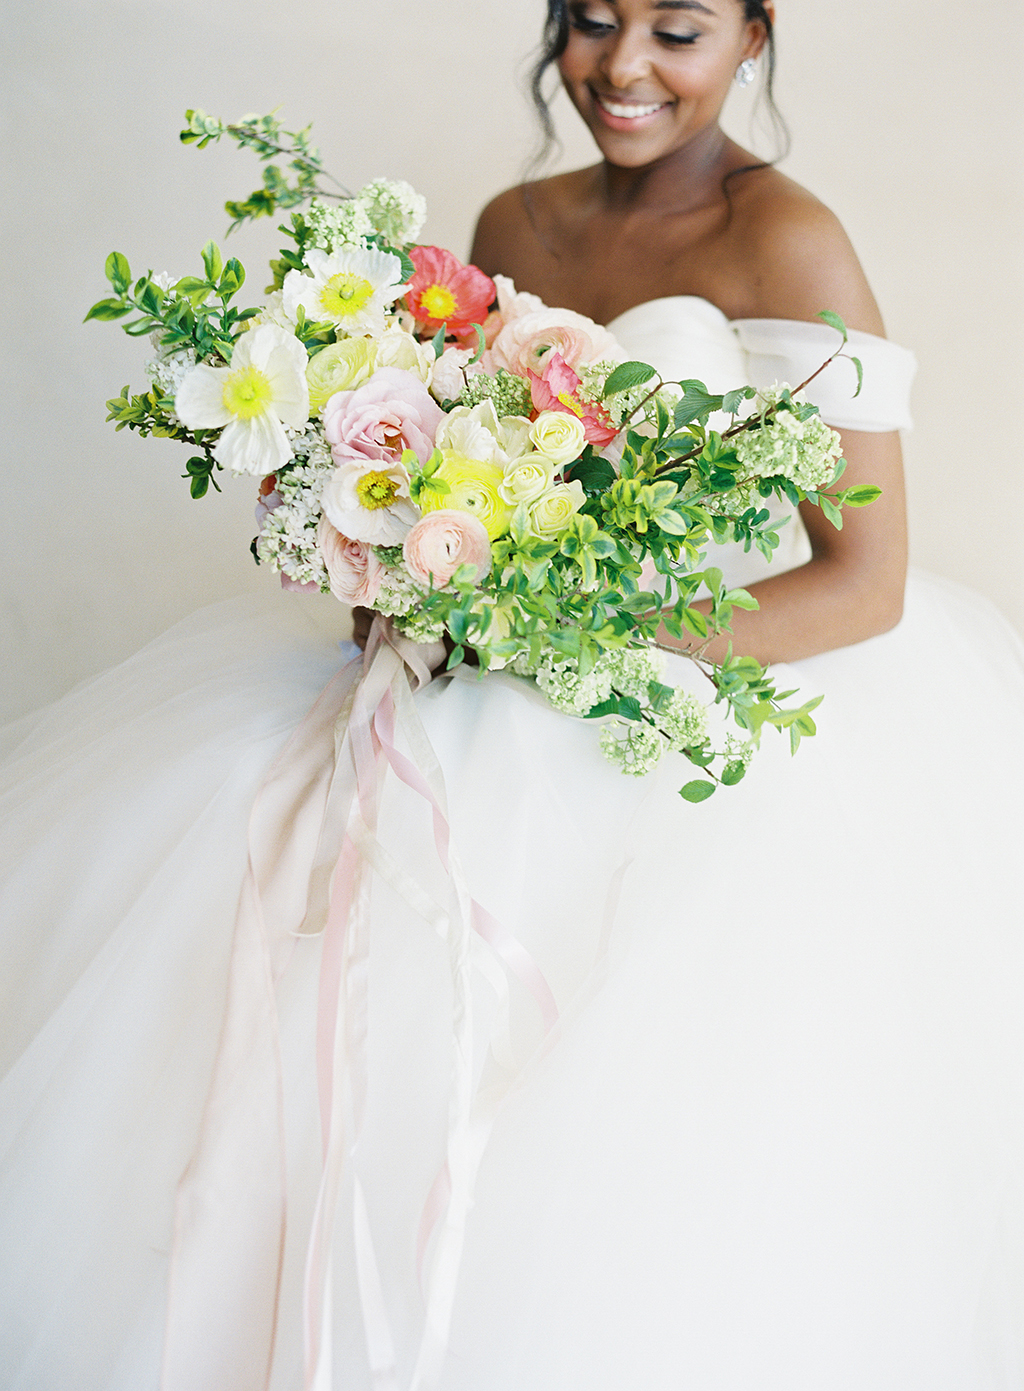 a colorful spring bouquet by art with nature and an amazing wedding gown by lazaro bridal at pelican hill resort